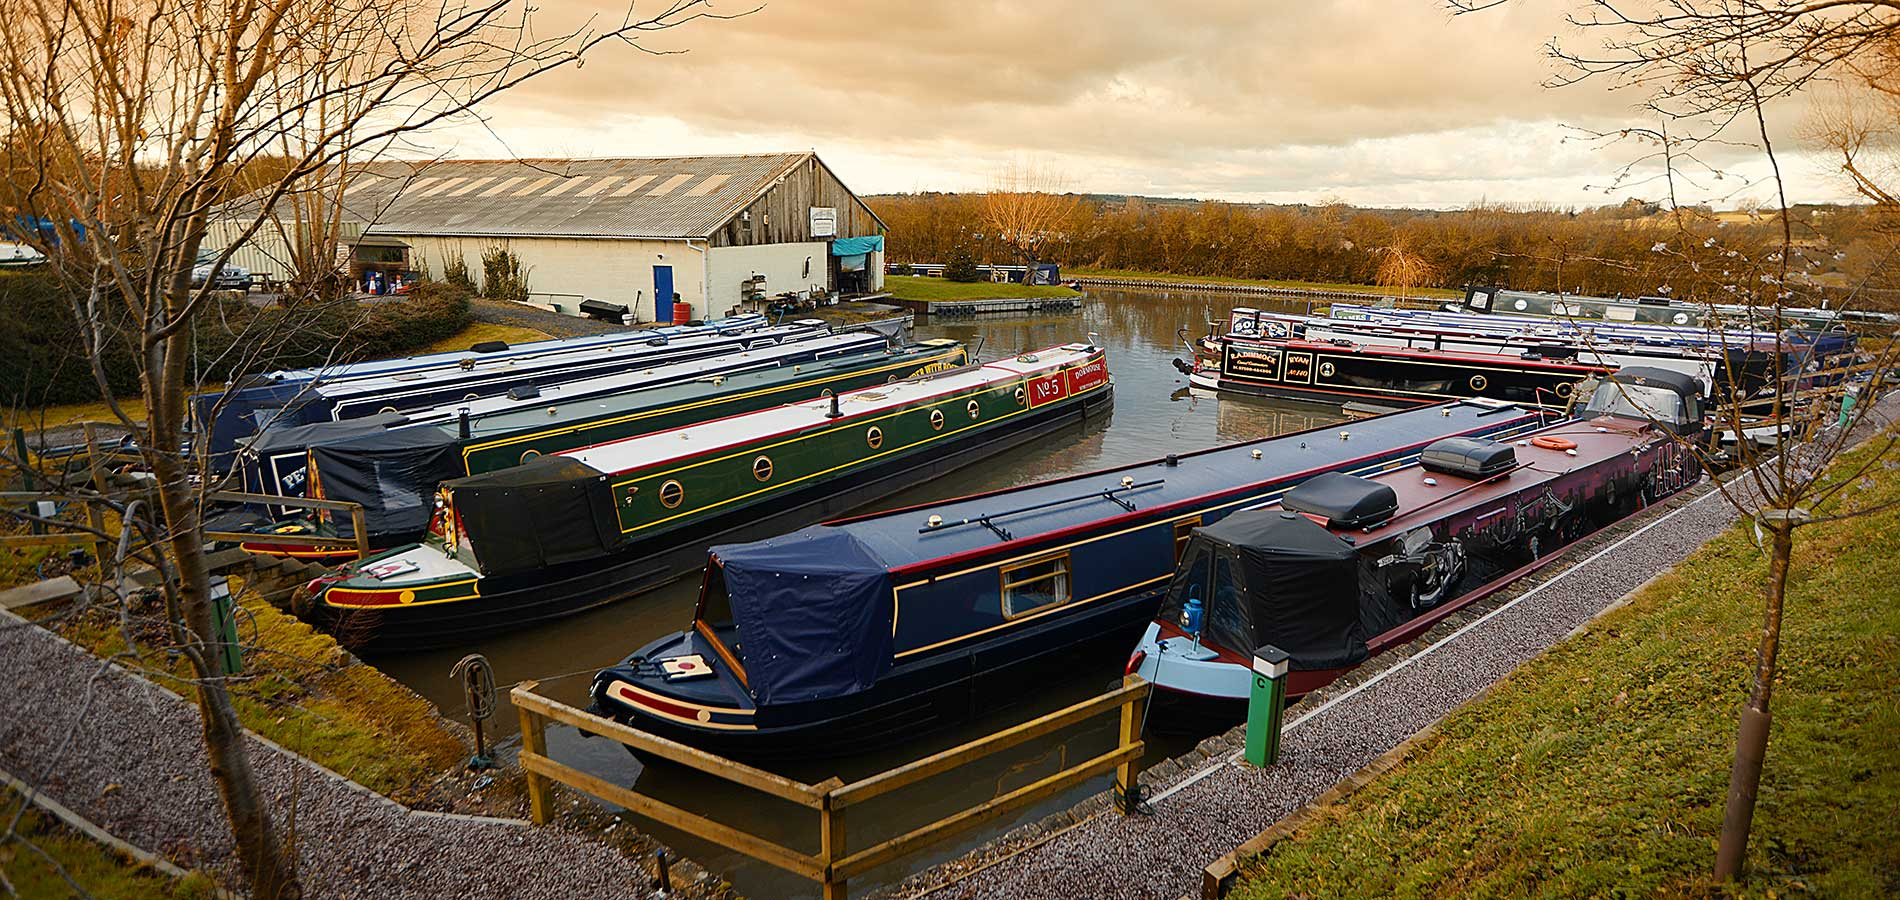 Boats moored at Stowe Hill Wharf, Rugby Boat Sales